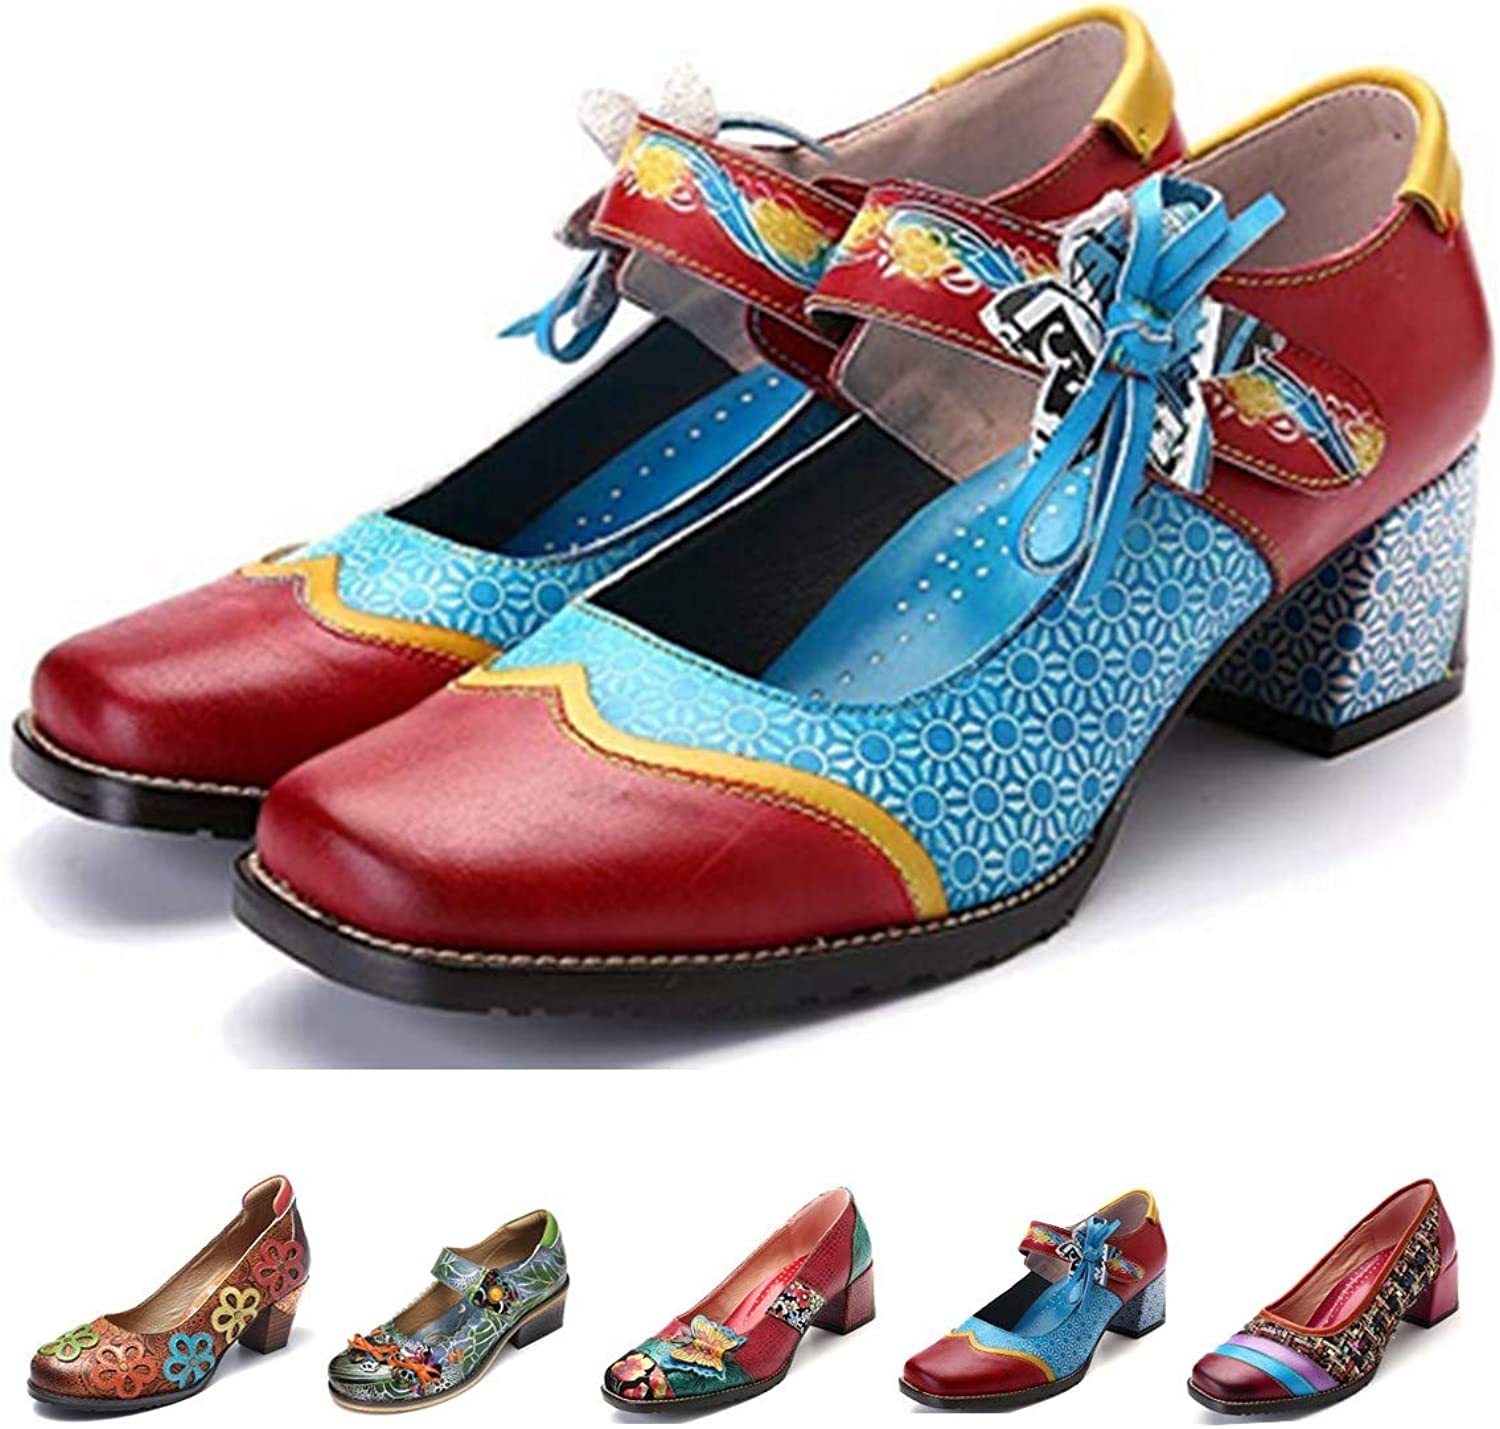 Gracosy Leather Pumps, Women's Wedge Sandals Mary Jane shoes Wedding Party Non Slip Buckle Ankle shoes